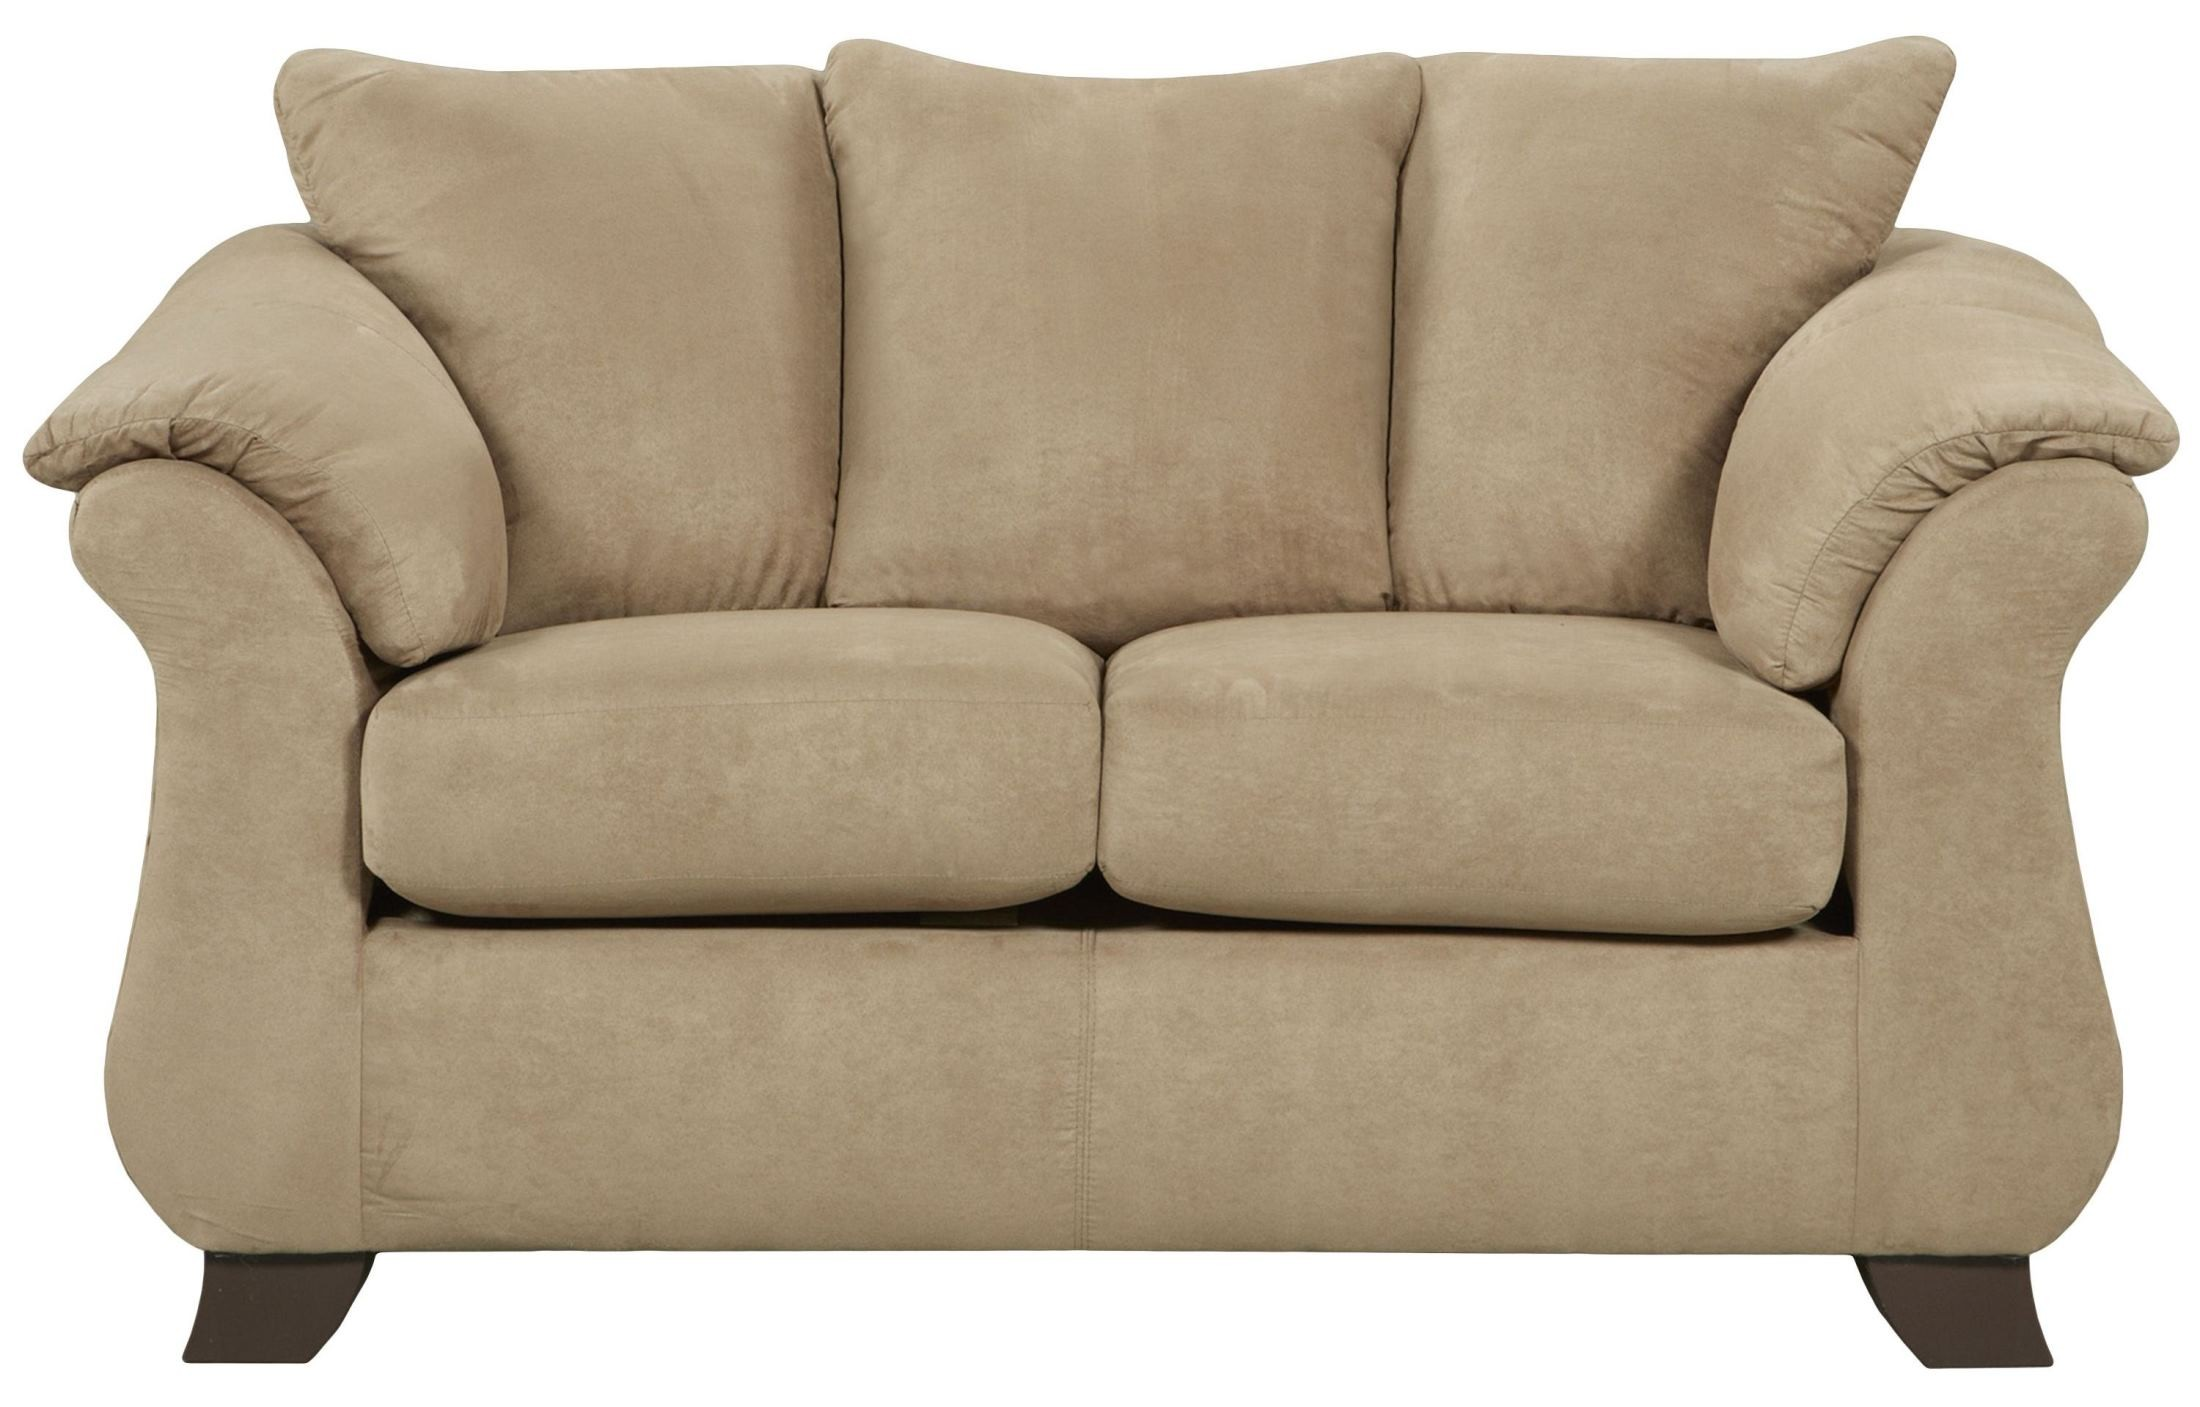 Exceptional Designs Sensations Camel Microfiber Loveseat From Renegade Coleman Furniture